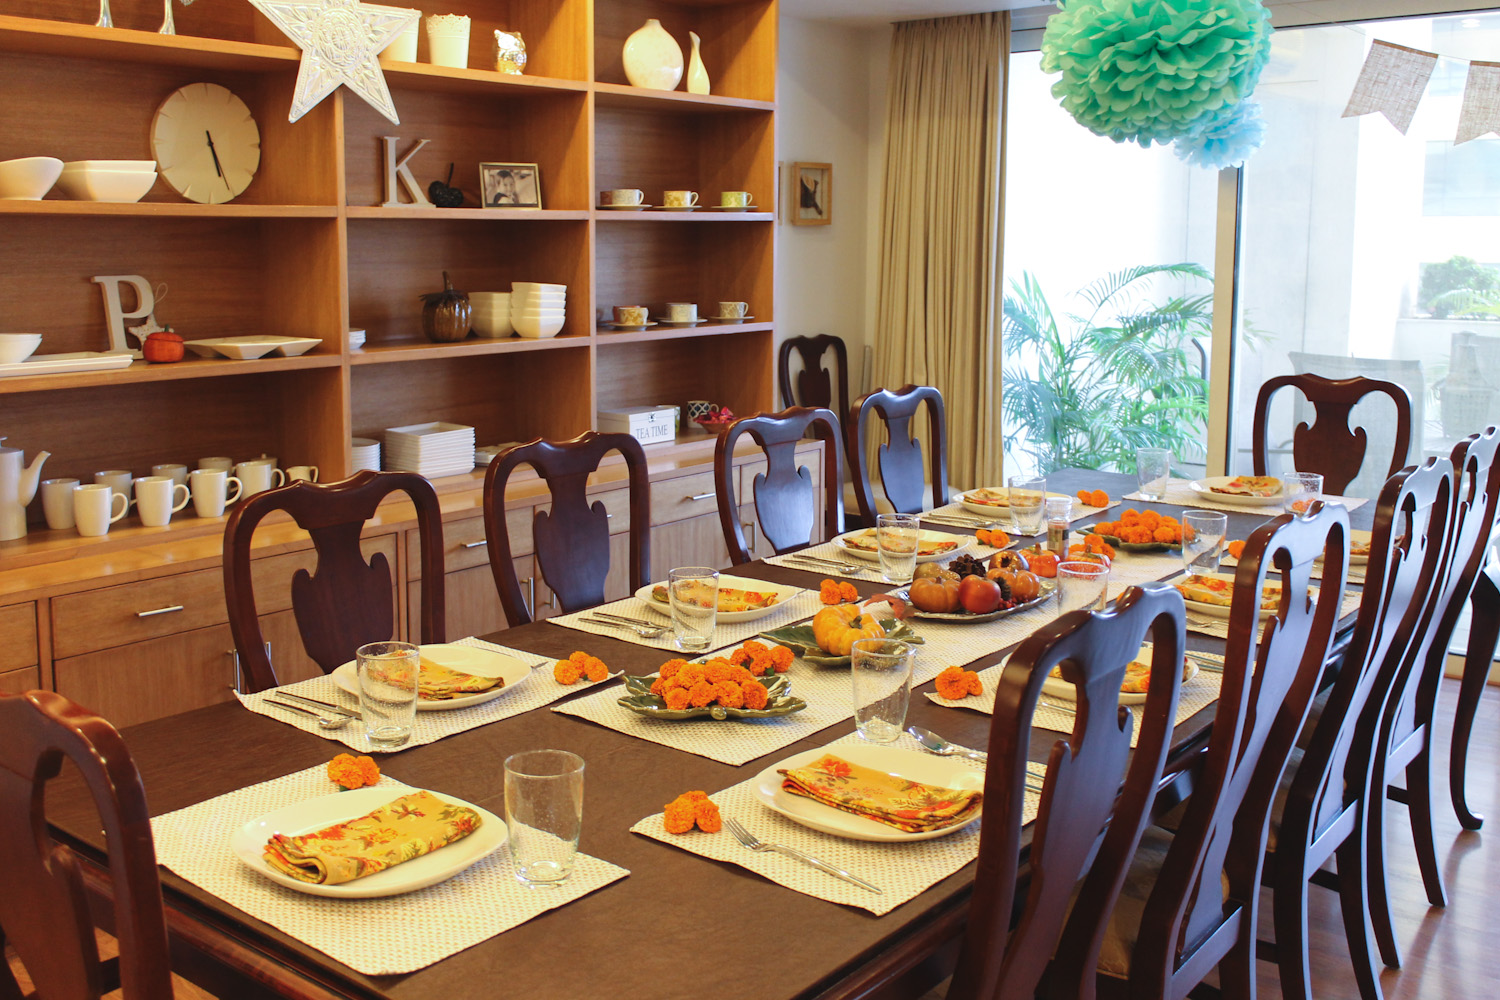 Decorating for Thanksgiving in India 2015